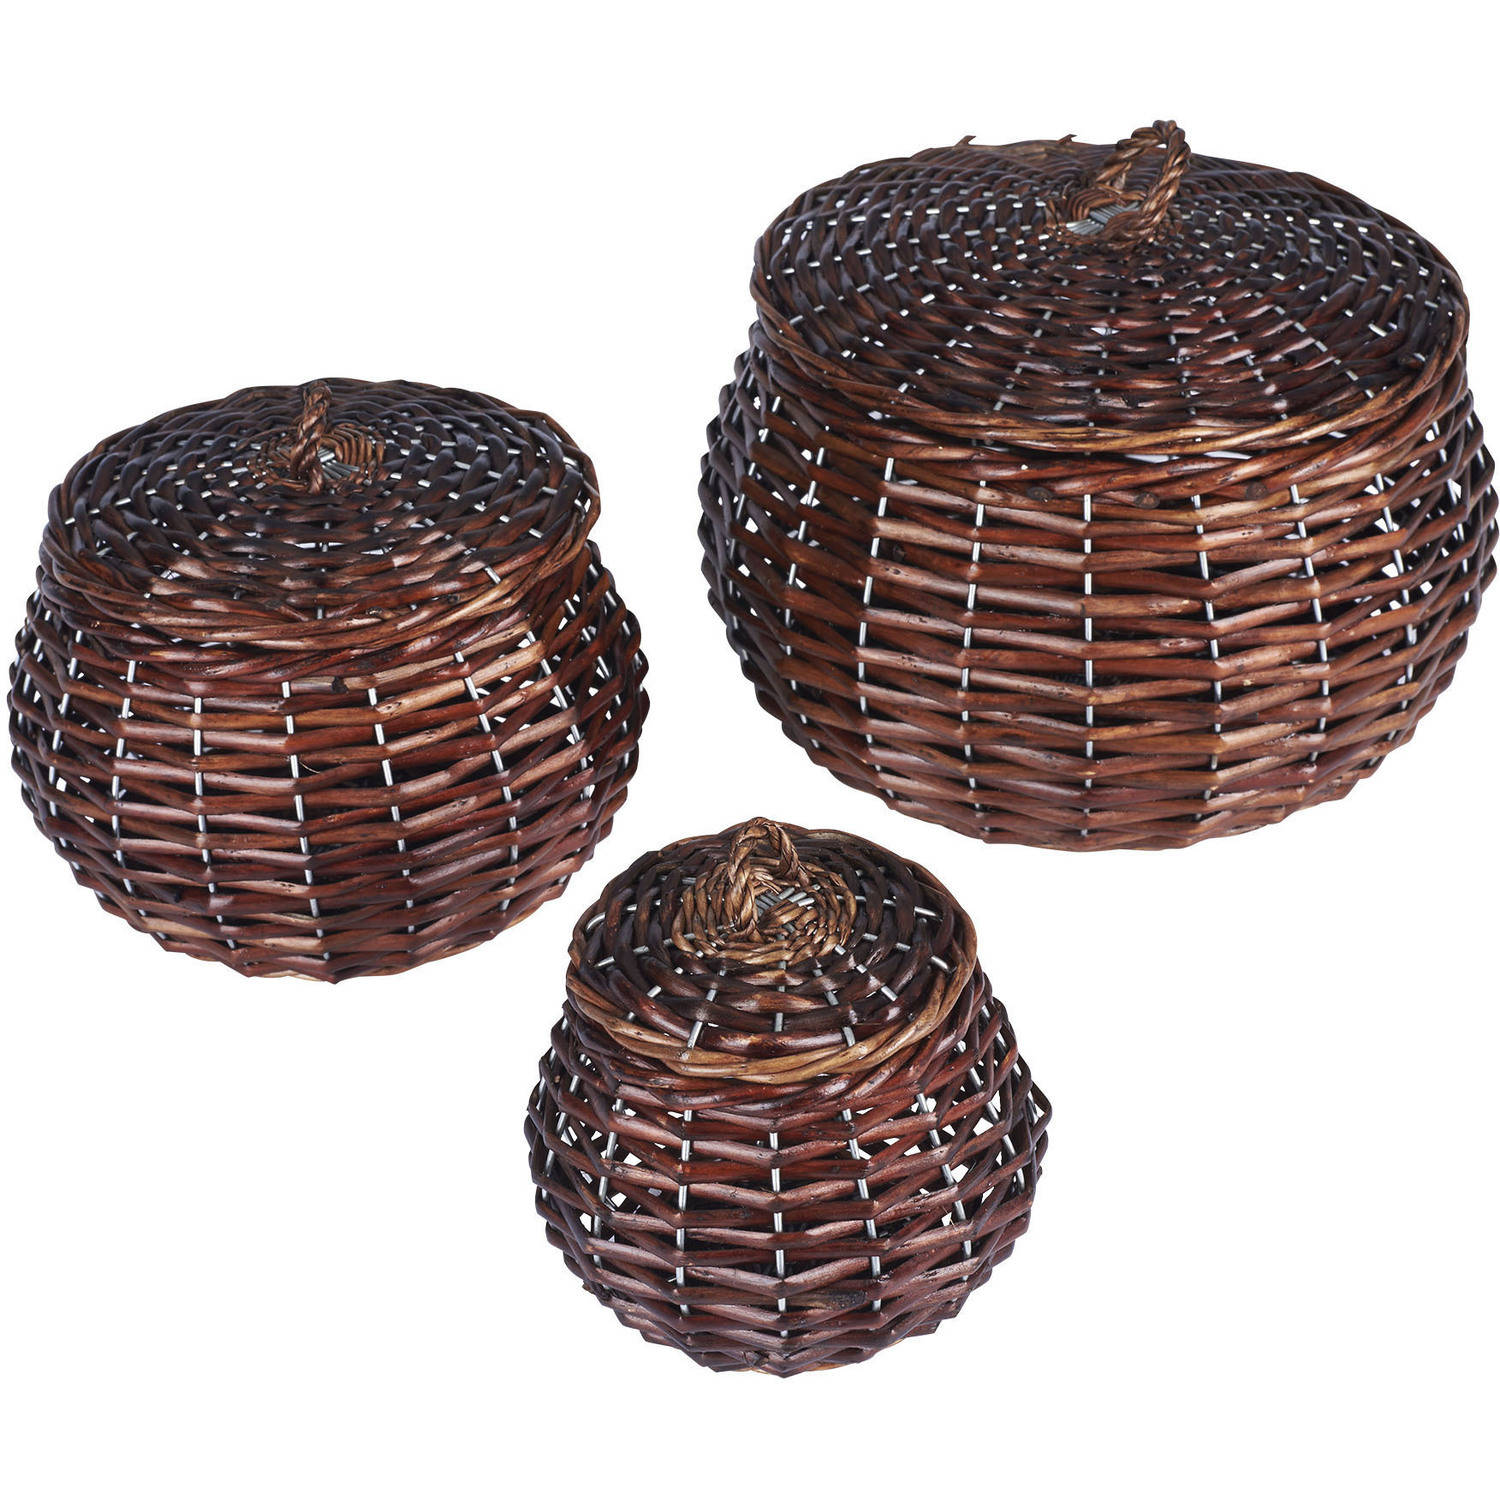 Household Essentials Toppins Round Willow Storage Basket, 3-Piece Set